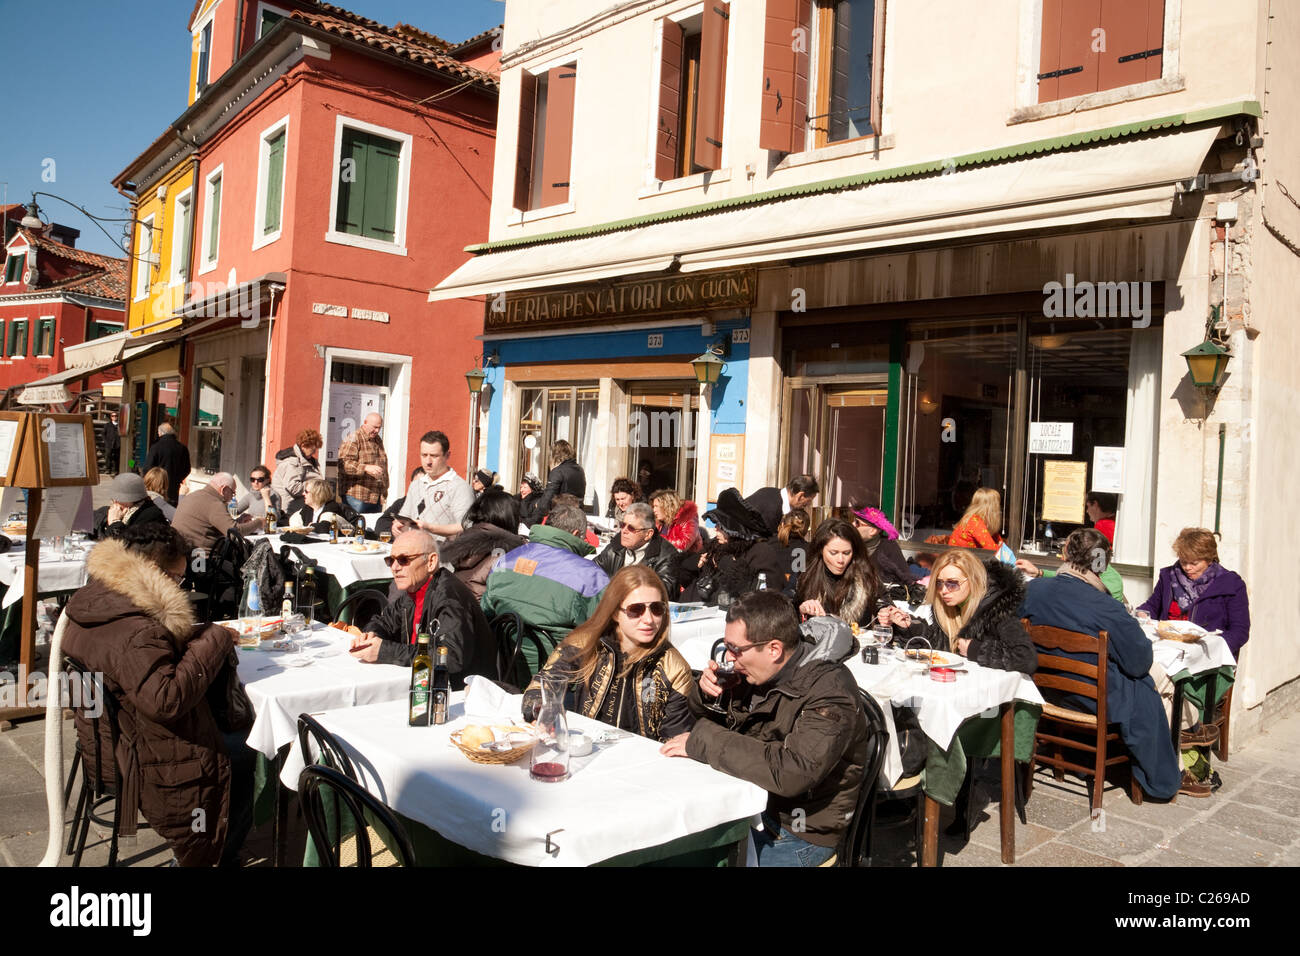 venice italy restaurant people stockfotos venice italy restaurant people bilder alamy. Black Bedroom Furniture Sets. Home Design Ideas